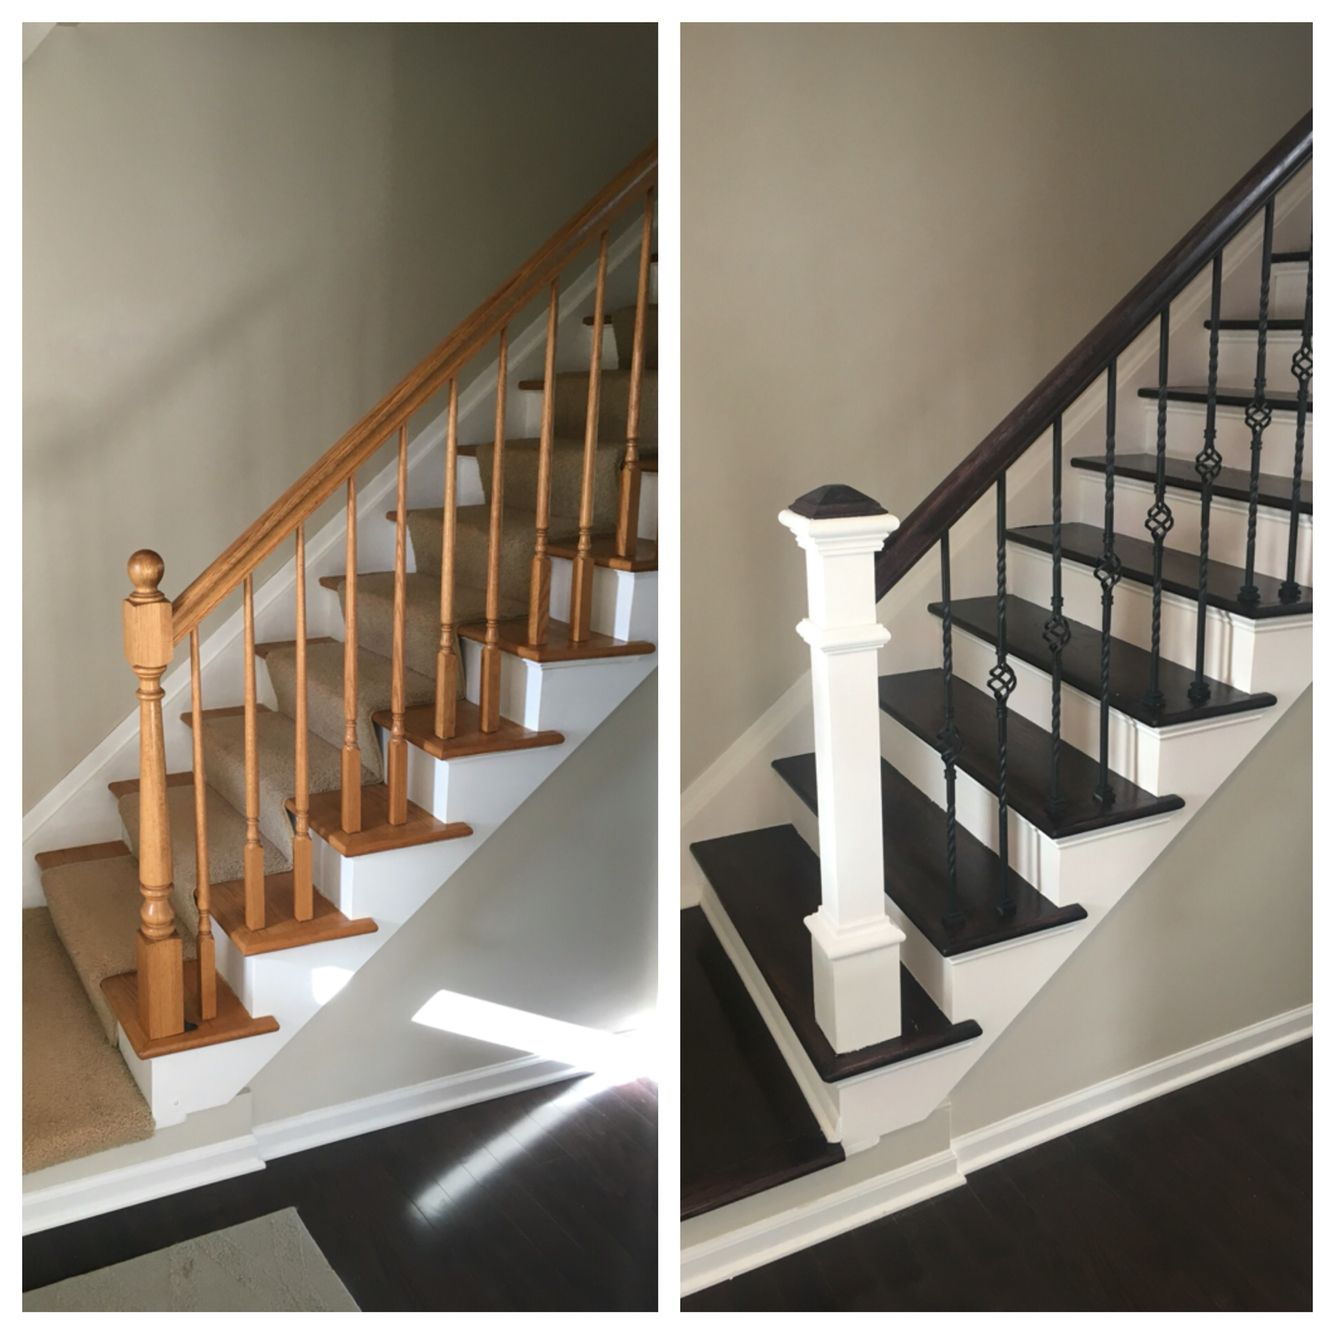 Stair Renovation Solutions Renovating Stairs Wrought Iron Wood Floor Finishing Clean Lines